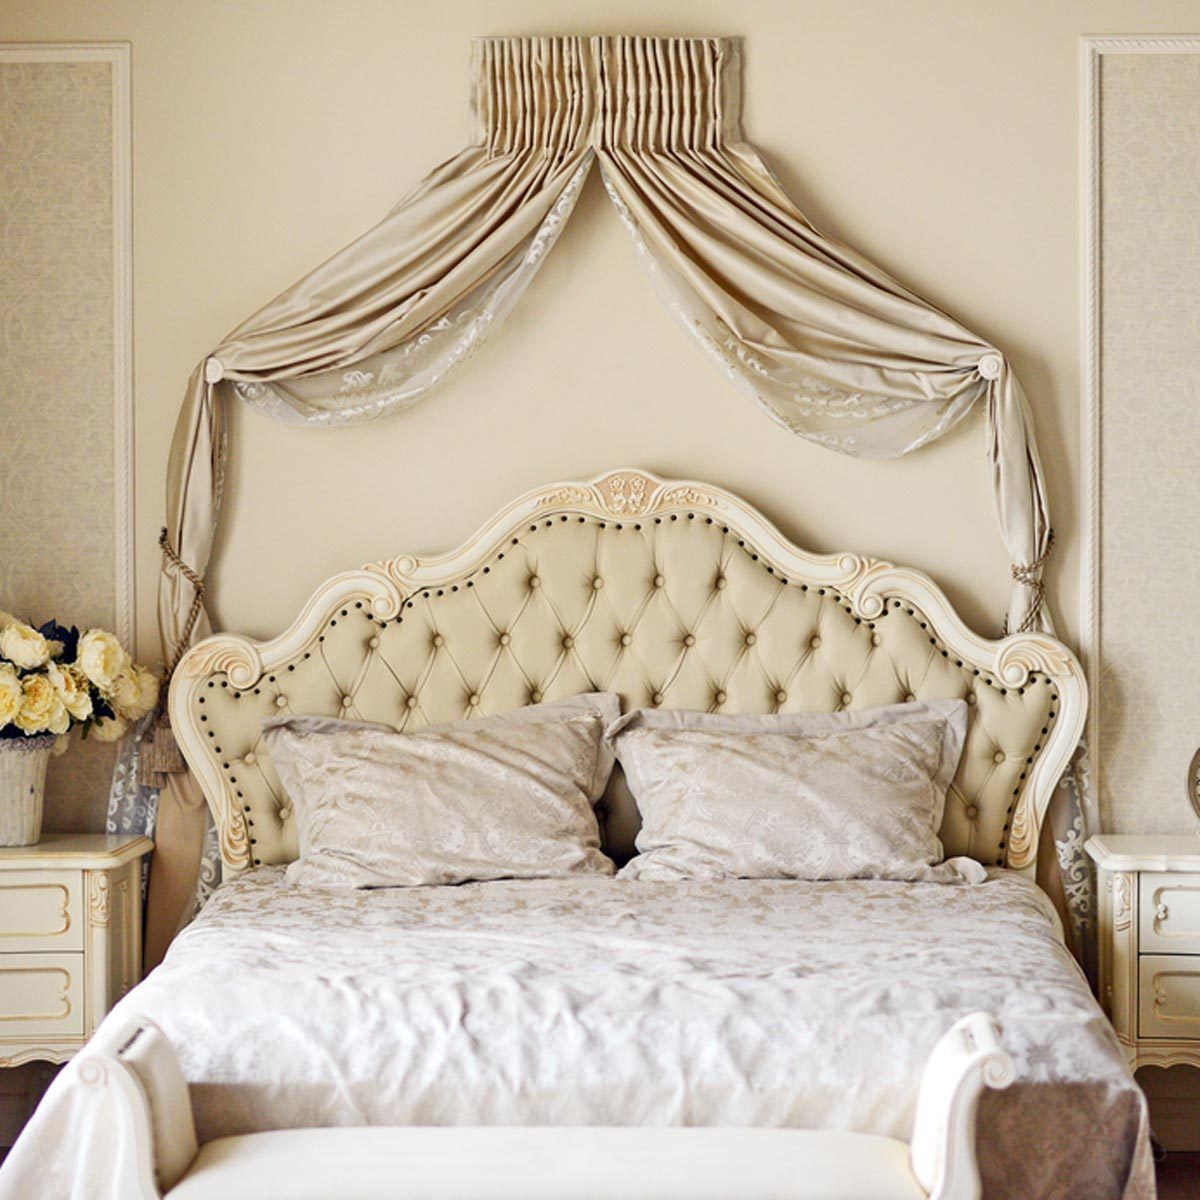 shutterstock_219349261 bedroom drape swags